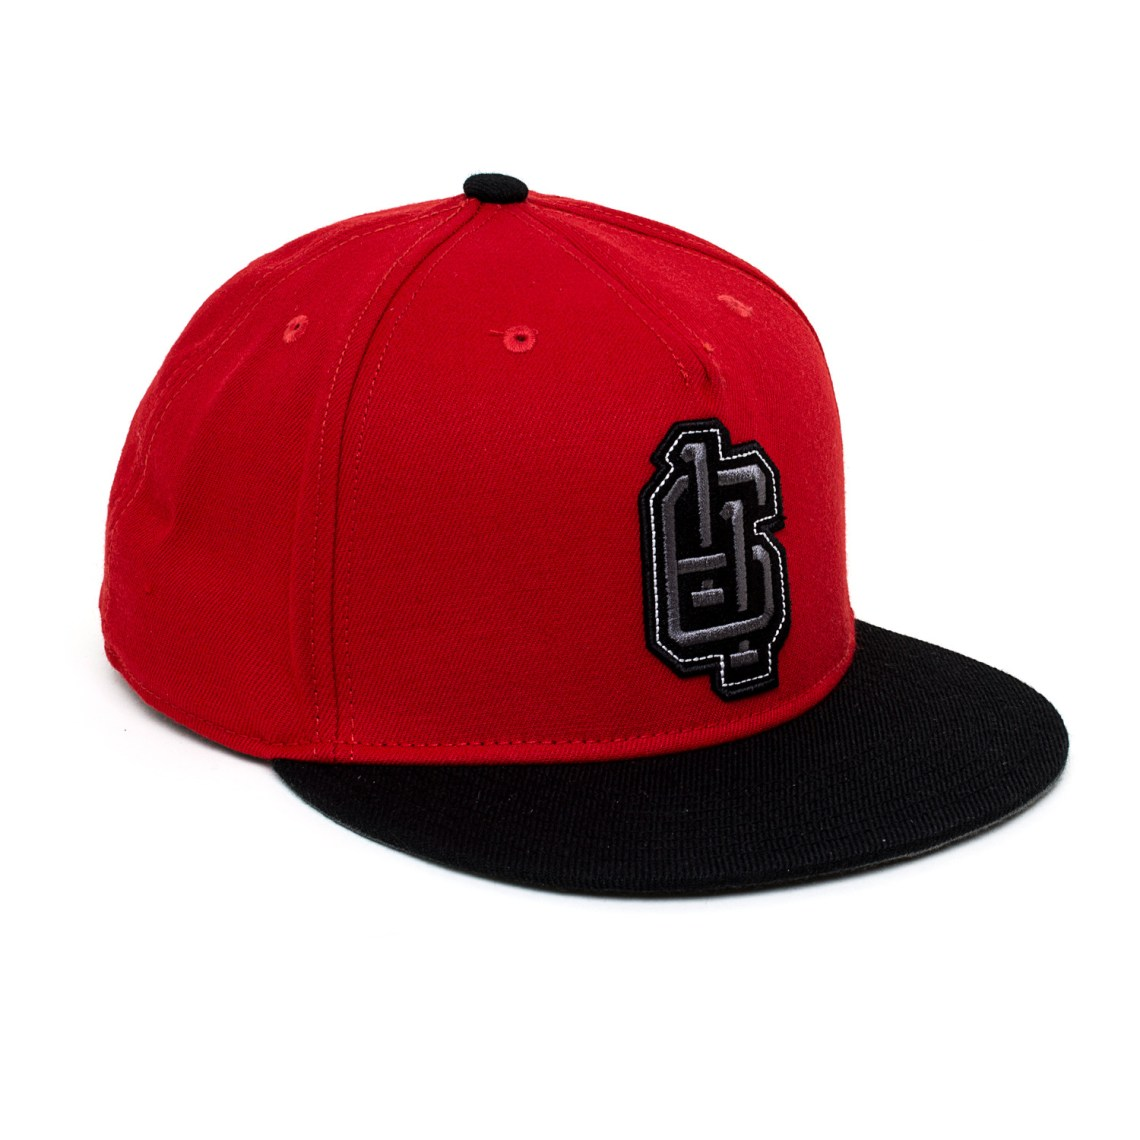 Of Our Favorite Christian Apparel Snapback Hats e4b6e4b565c